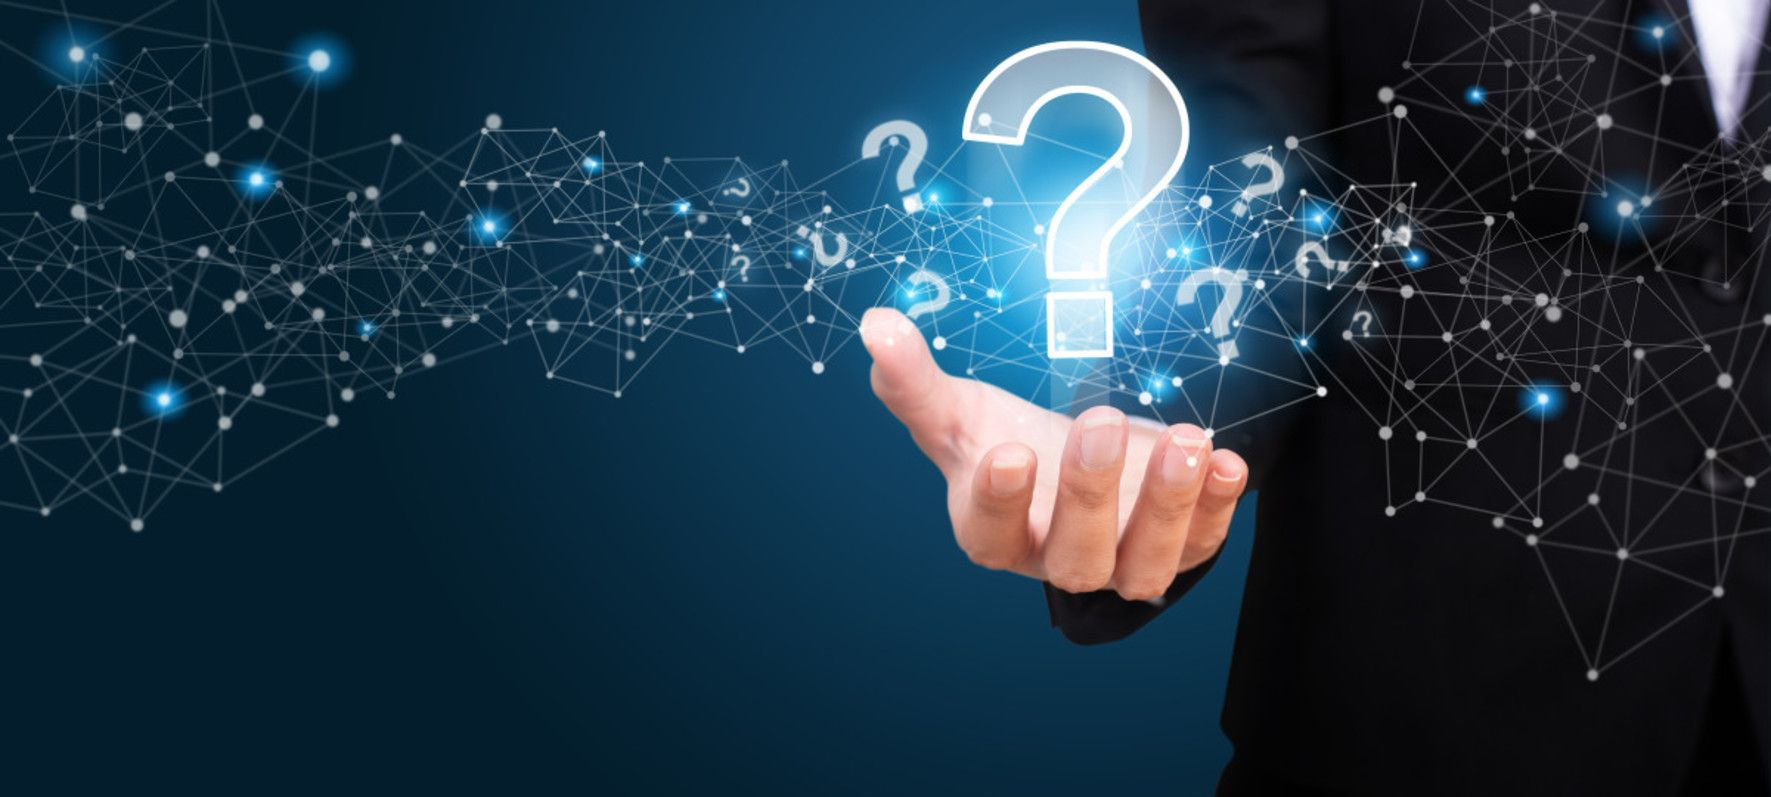 To Succeed As an Intrapreneur: Ask the Right Questions